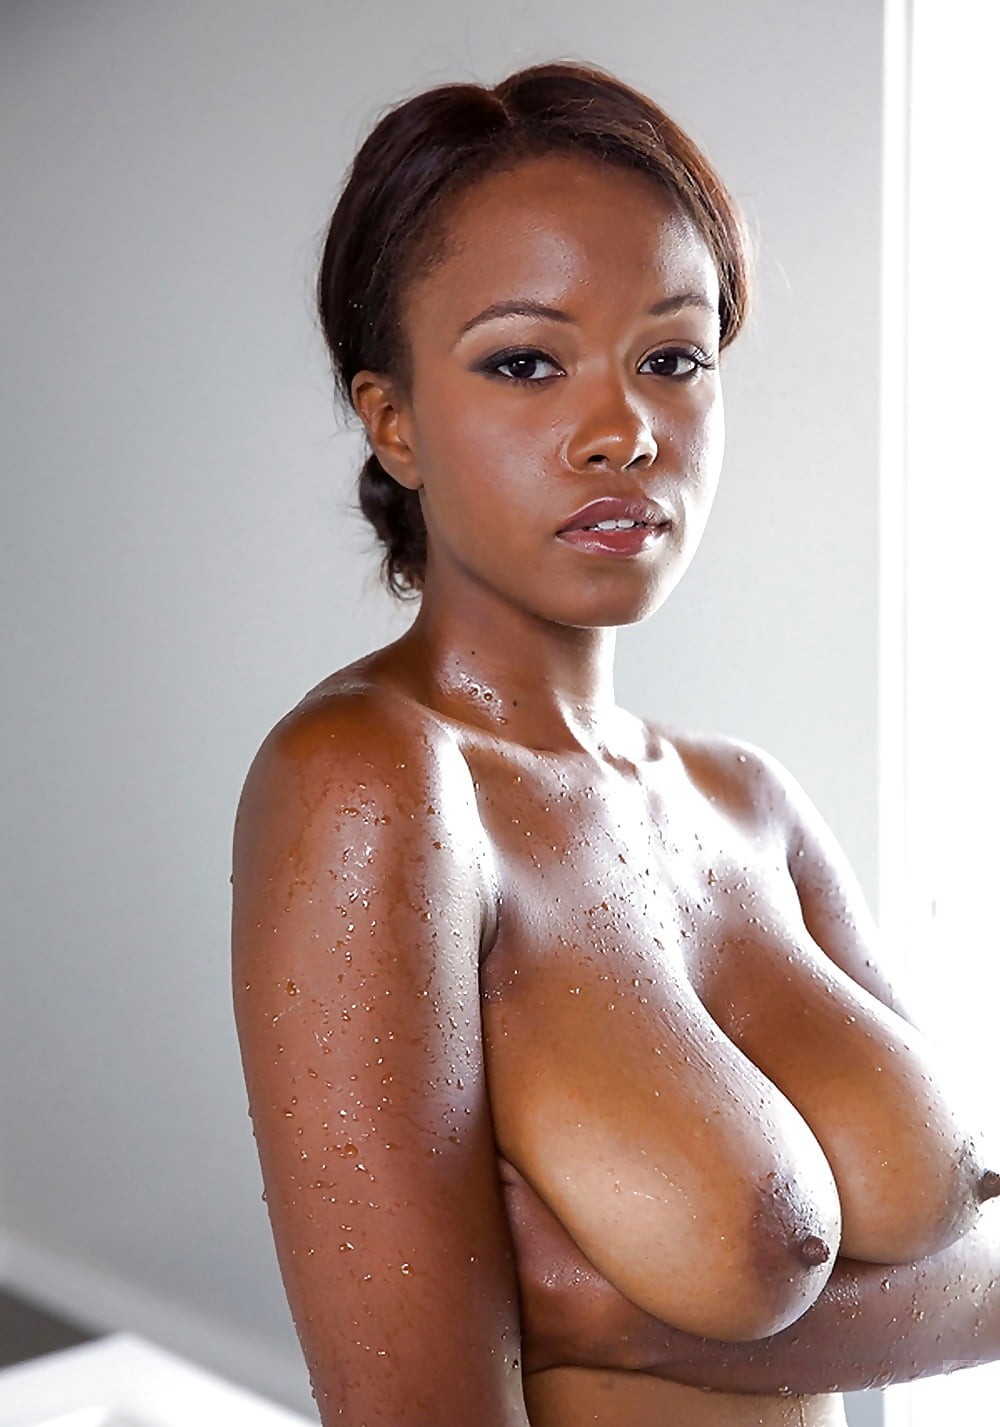 Black girls big natural tits — photo 11